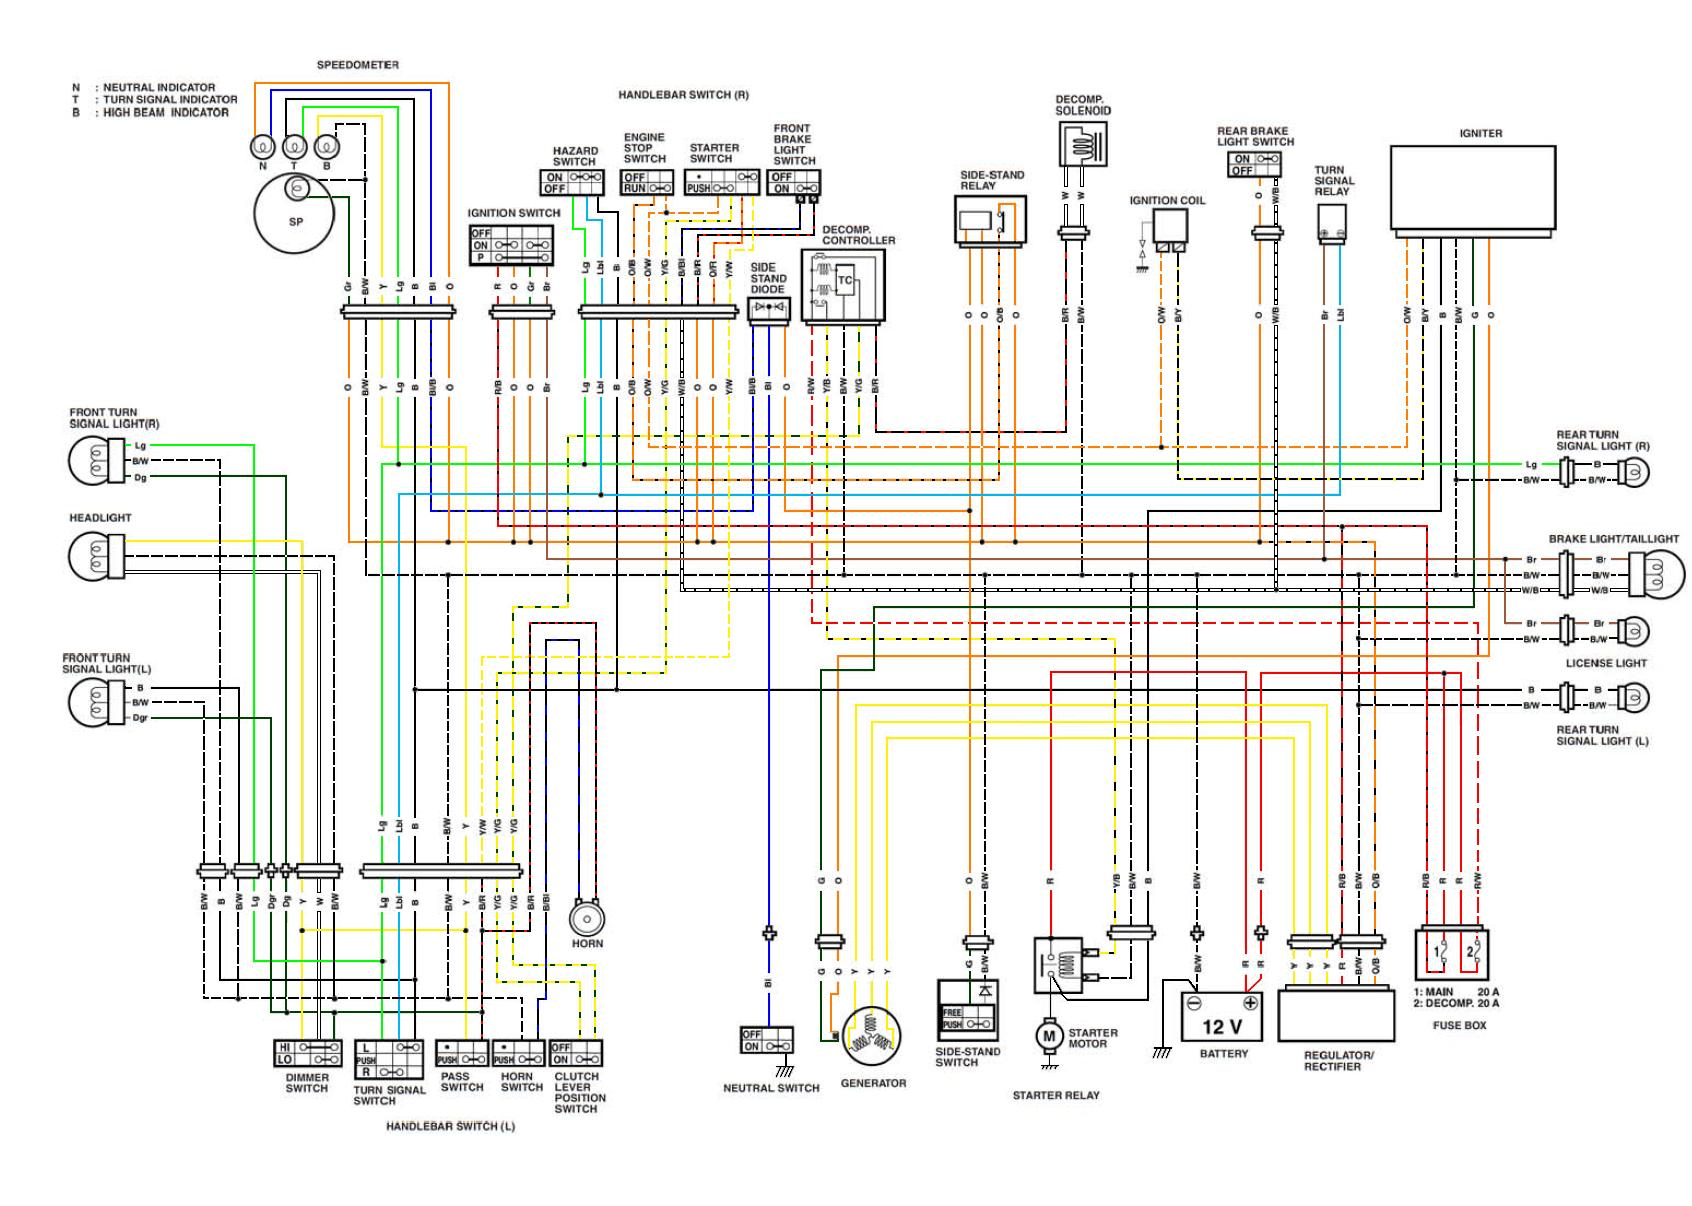 genie s40 wiring diagram wiring diagram pass genie s40 wiring diagram [ 1692 x 1206 Pixel ]